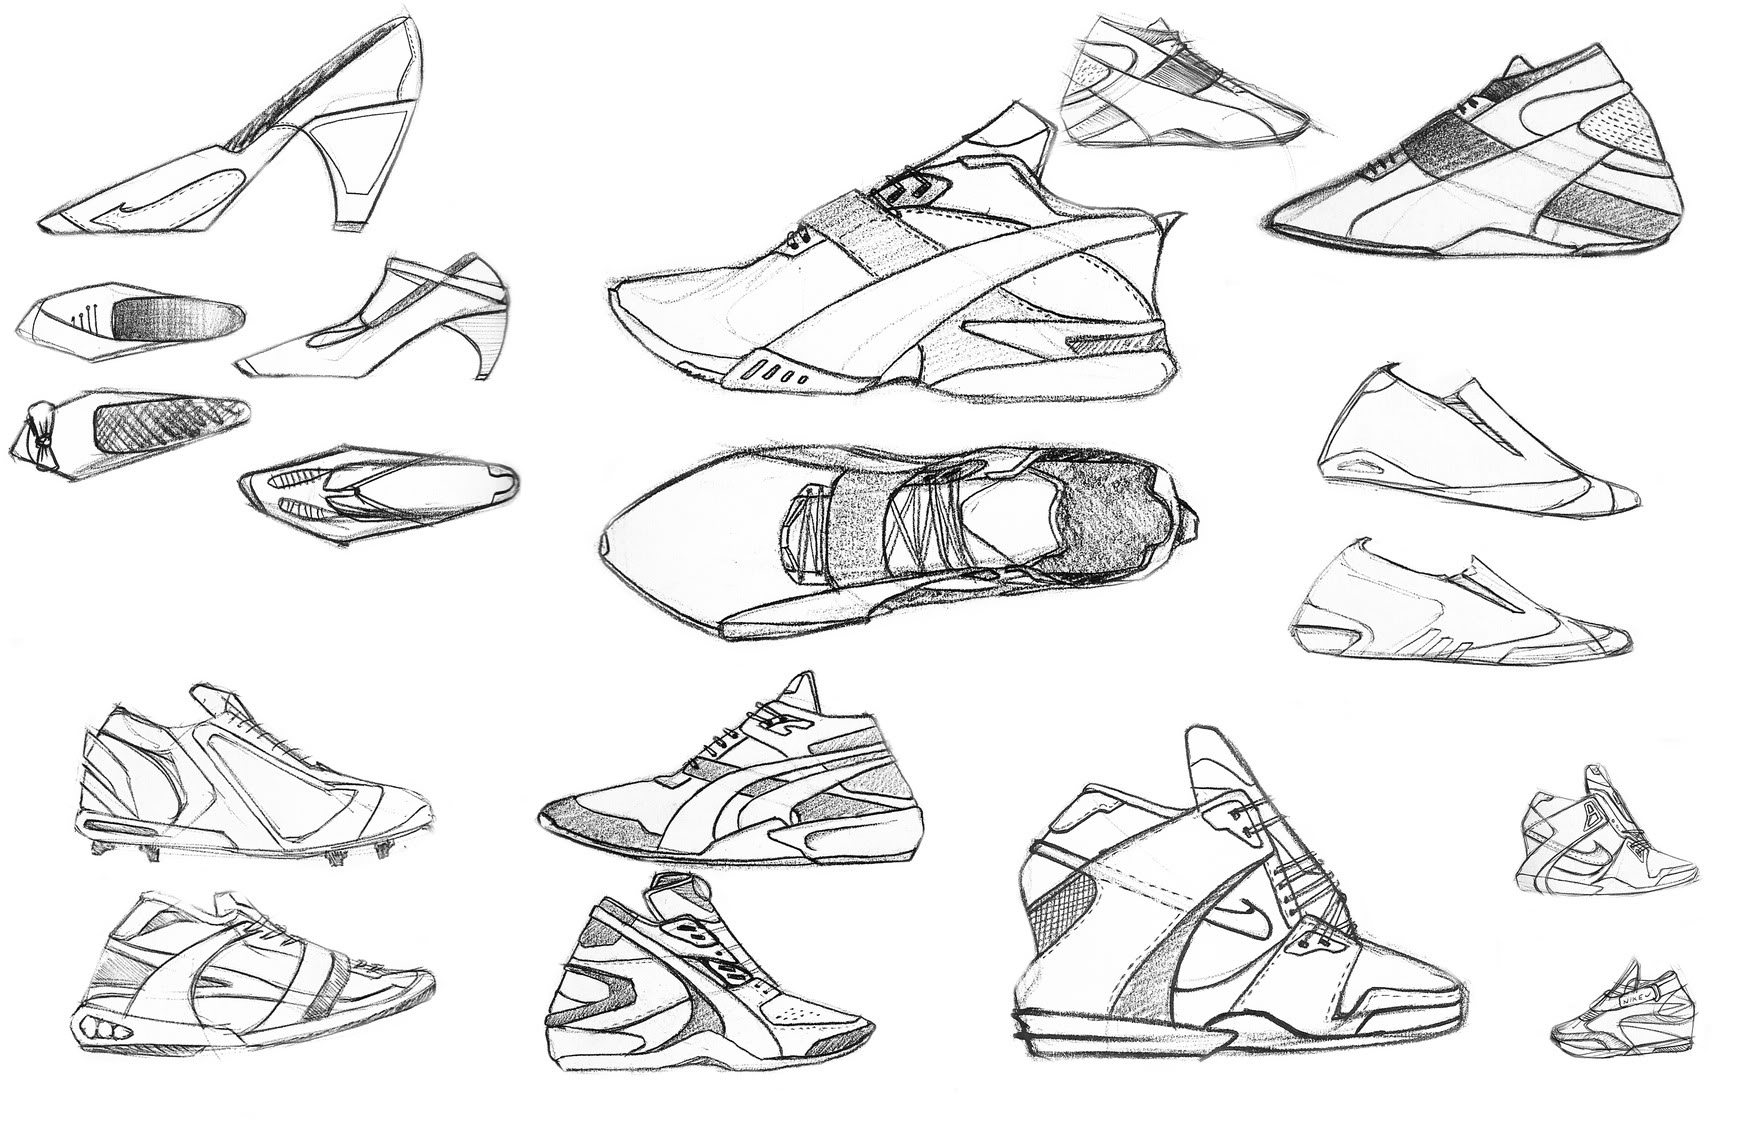 Industrial design sketches furniture - H Favorite Qview Full Size